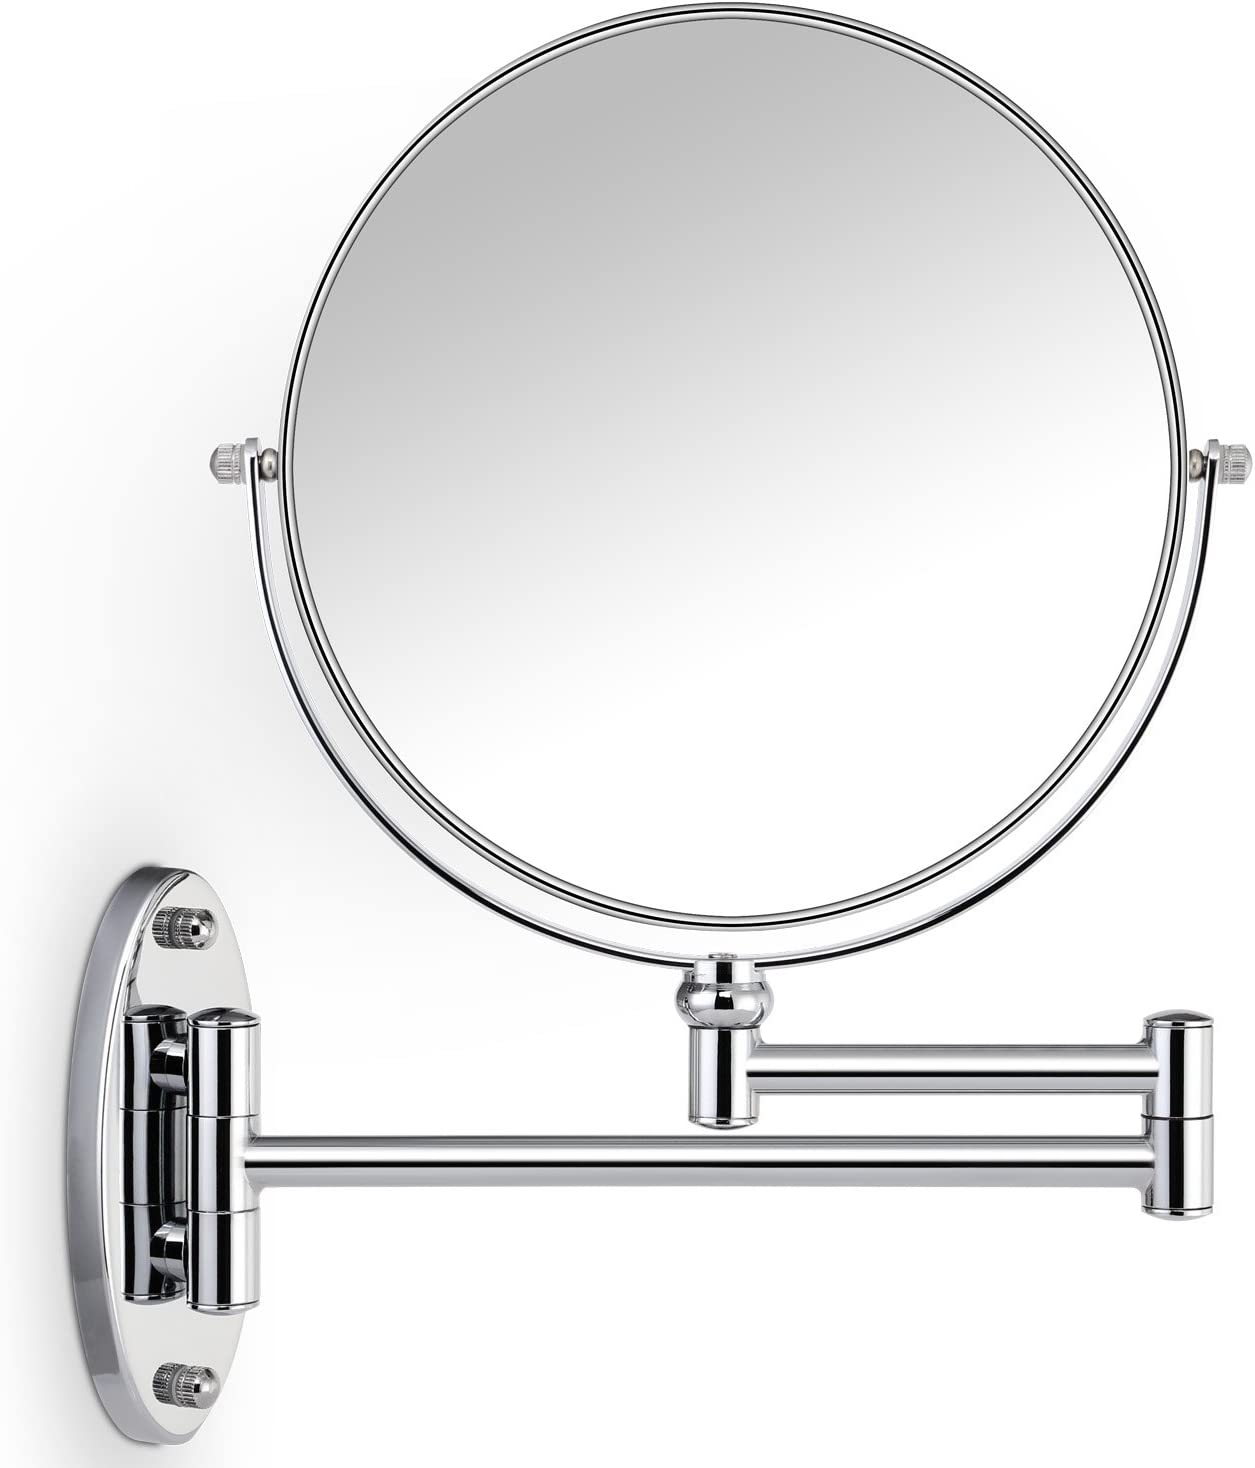 Miusco 7X Non-Lighted Wall Mounted Makeup Mirror Reviews